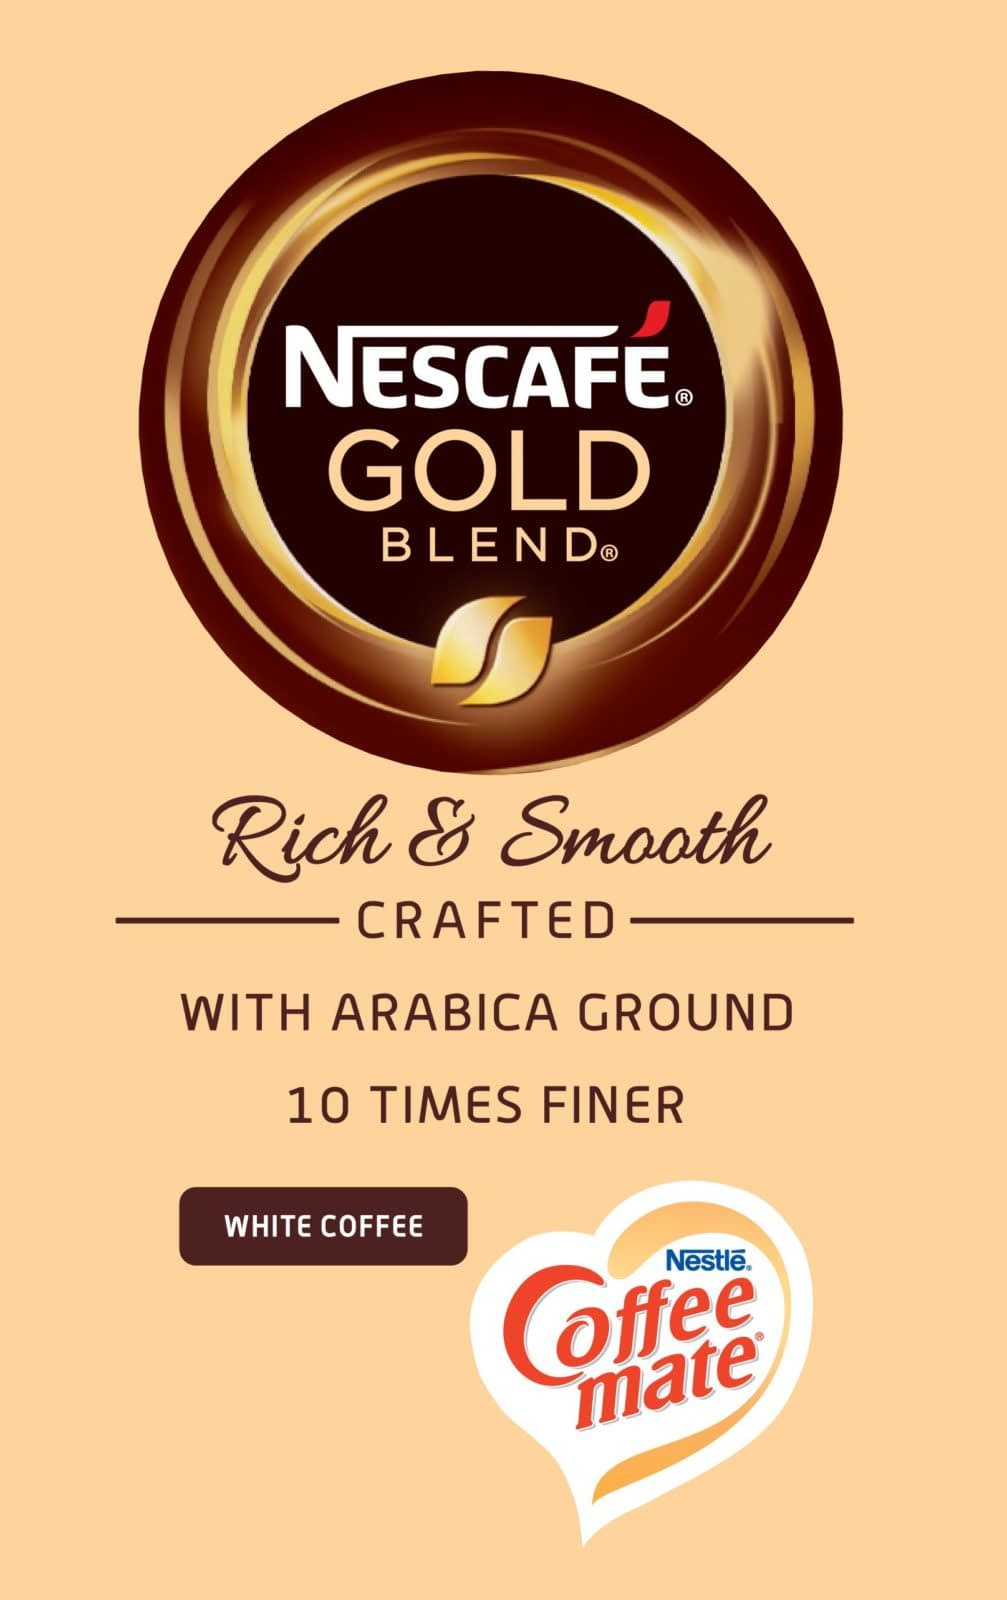 12 x 25 Sleeves 300 Cups Nescafe Gold Blend In-Cup Coffee White 73 mm